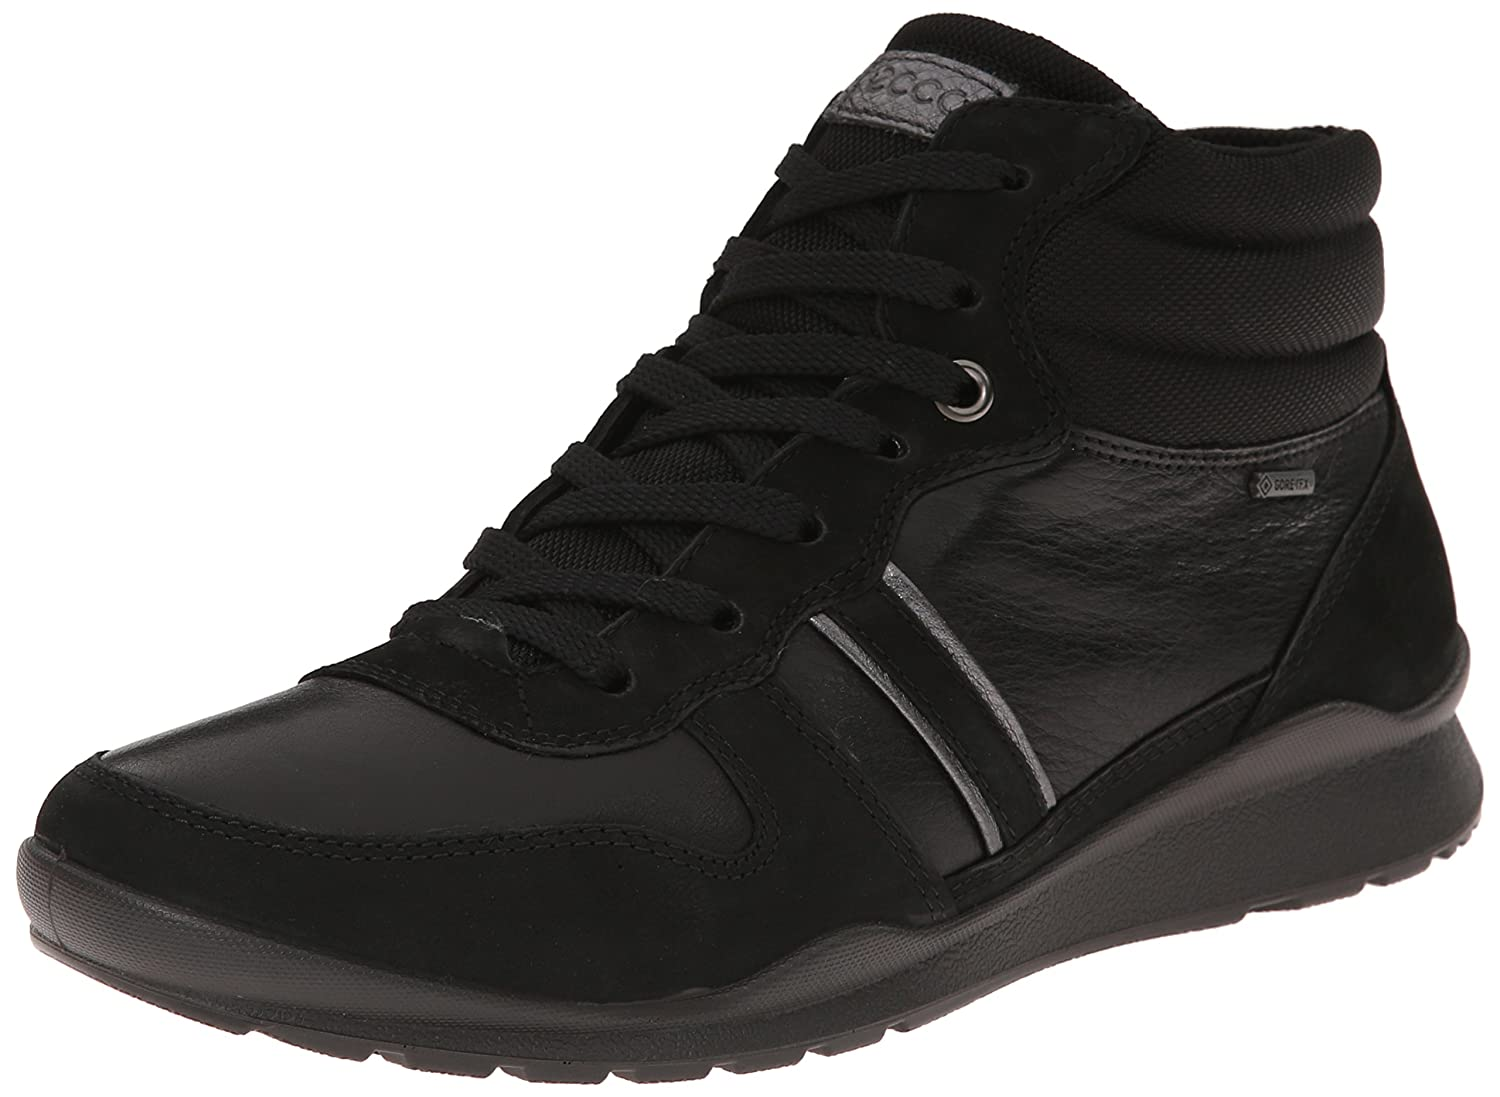 ECCO Footwear Womens Mobile III GTX Boot B00O8GI4CI 41 EU/10-10.5 M US|Black